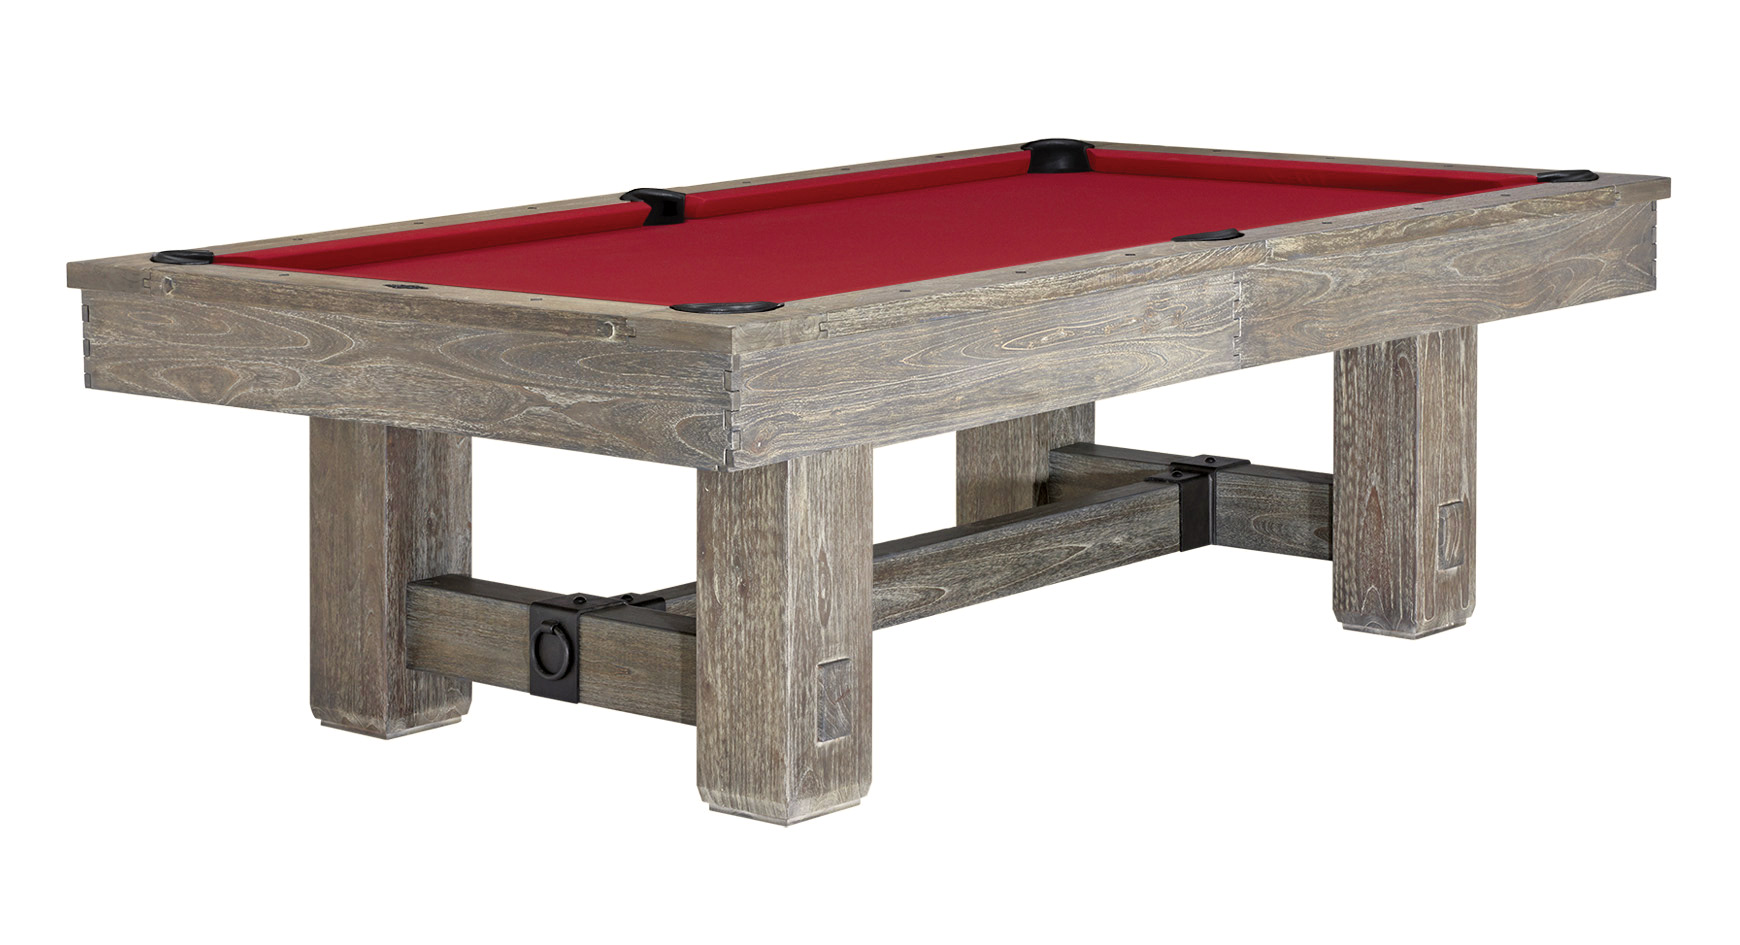 Merrimack - Brunswick centennial pool table